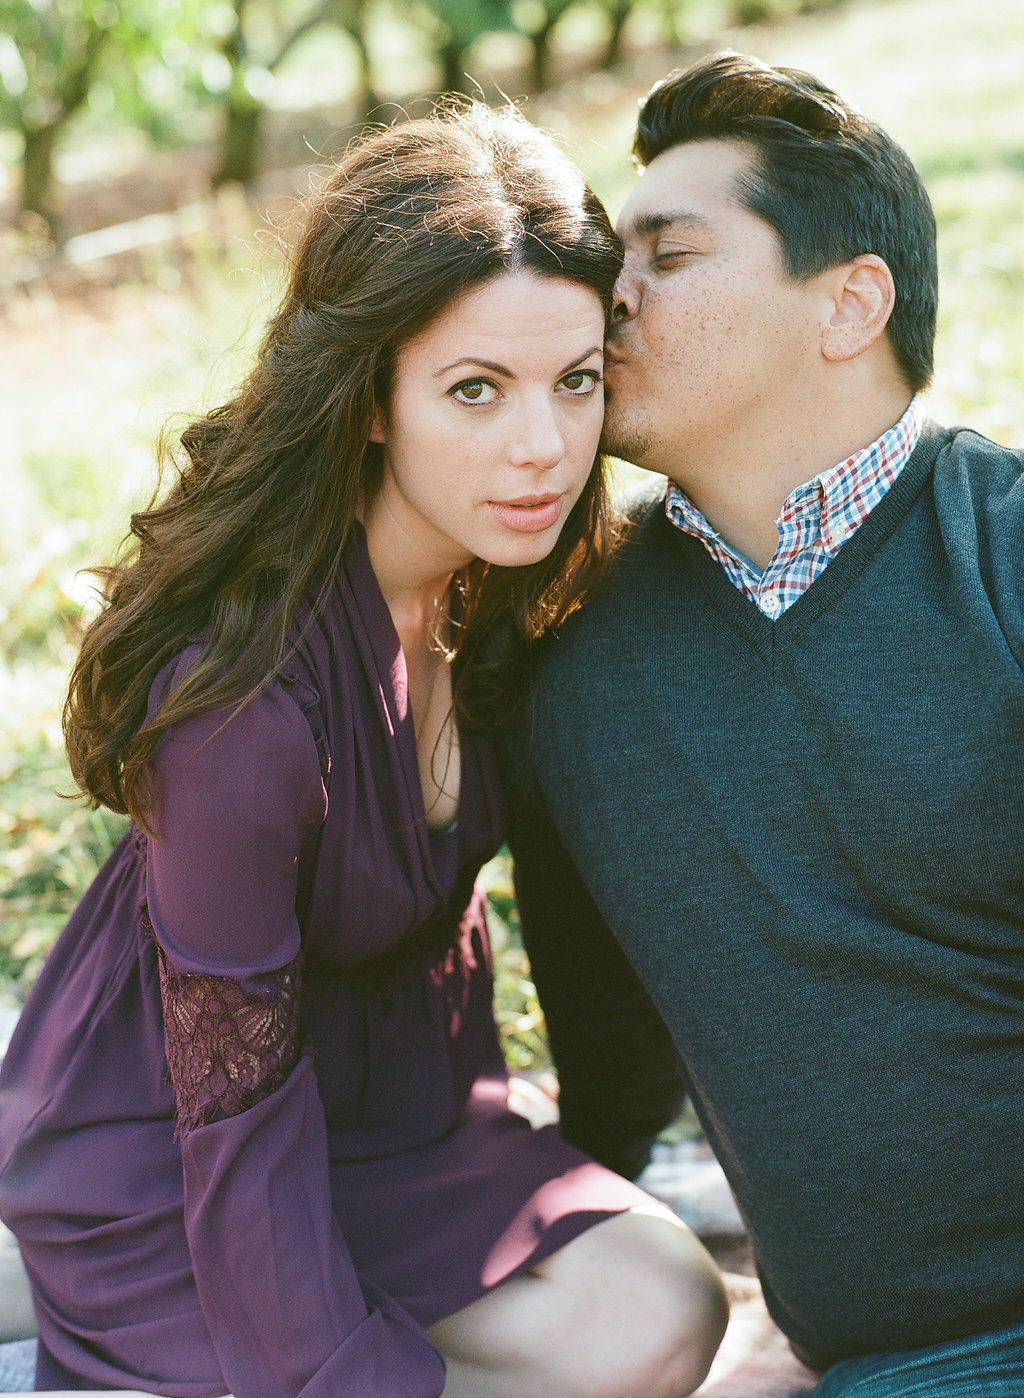 JESSICA_RICK_ENGAGEMENT_SESSION(62of202).jpg